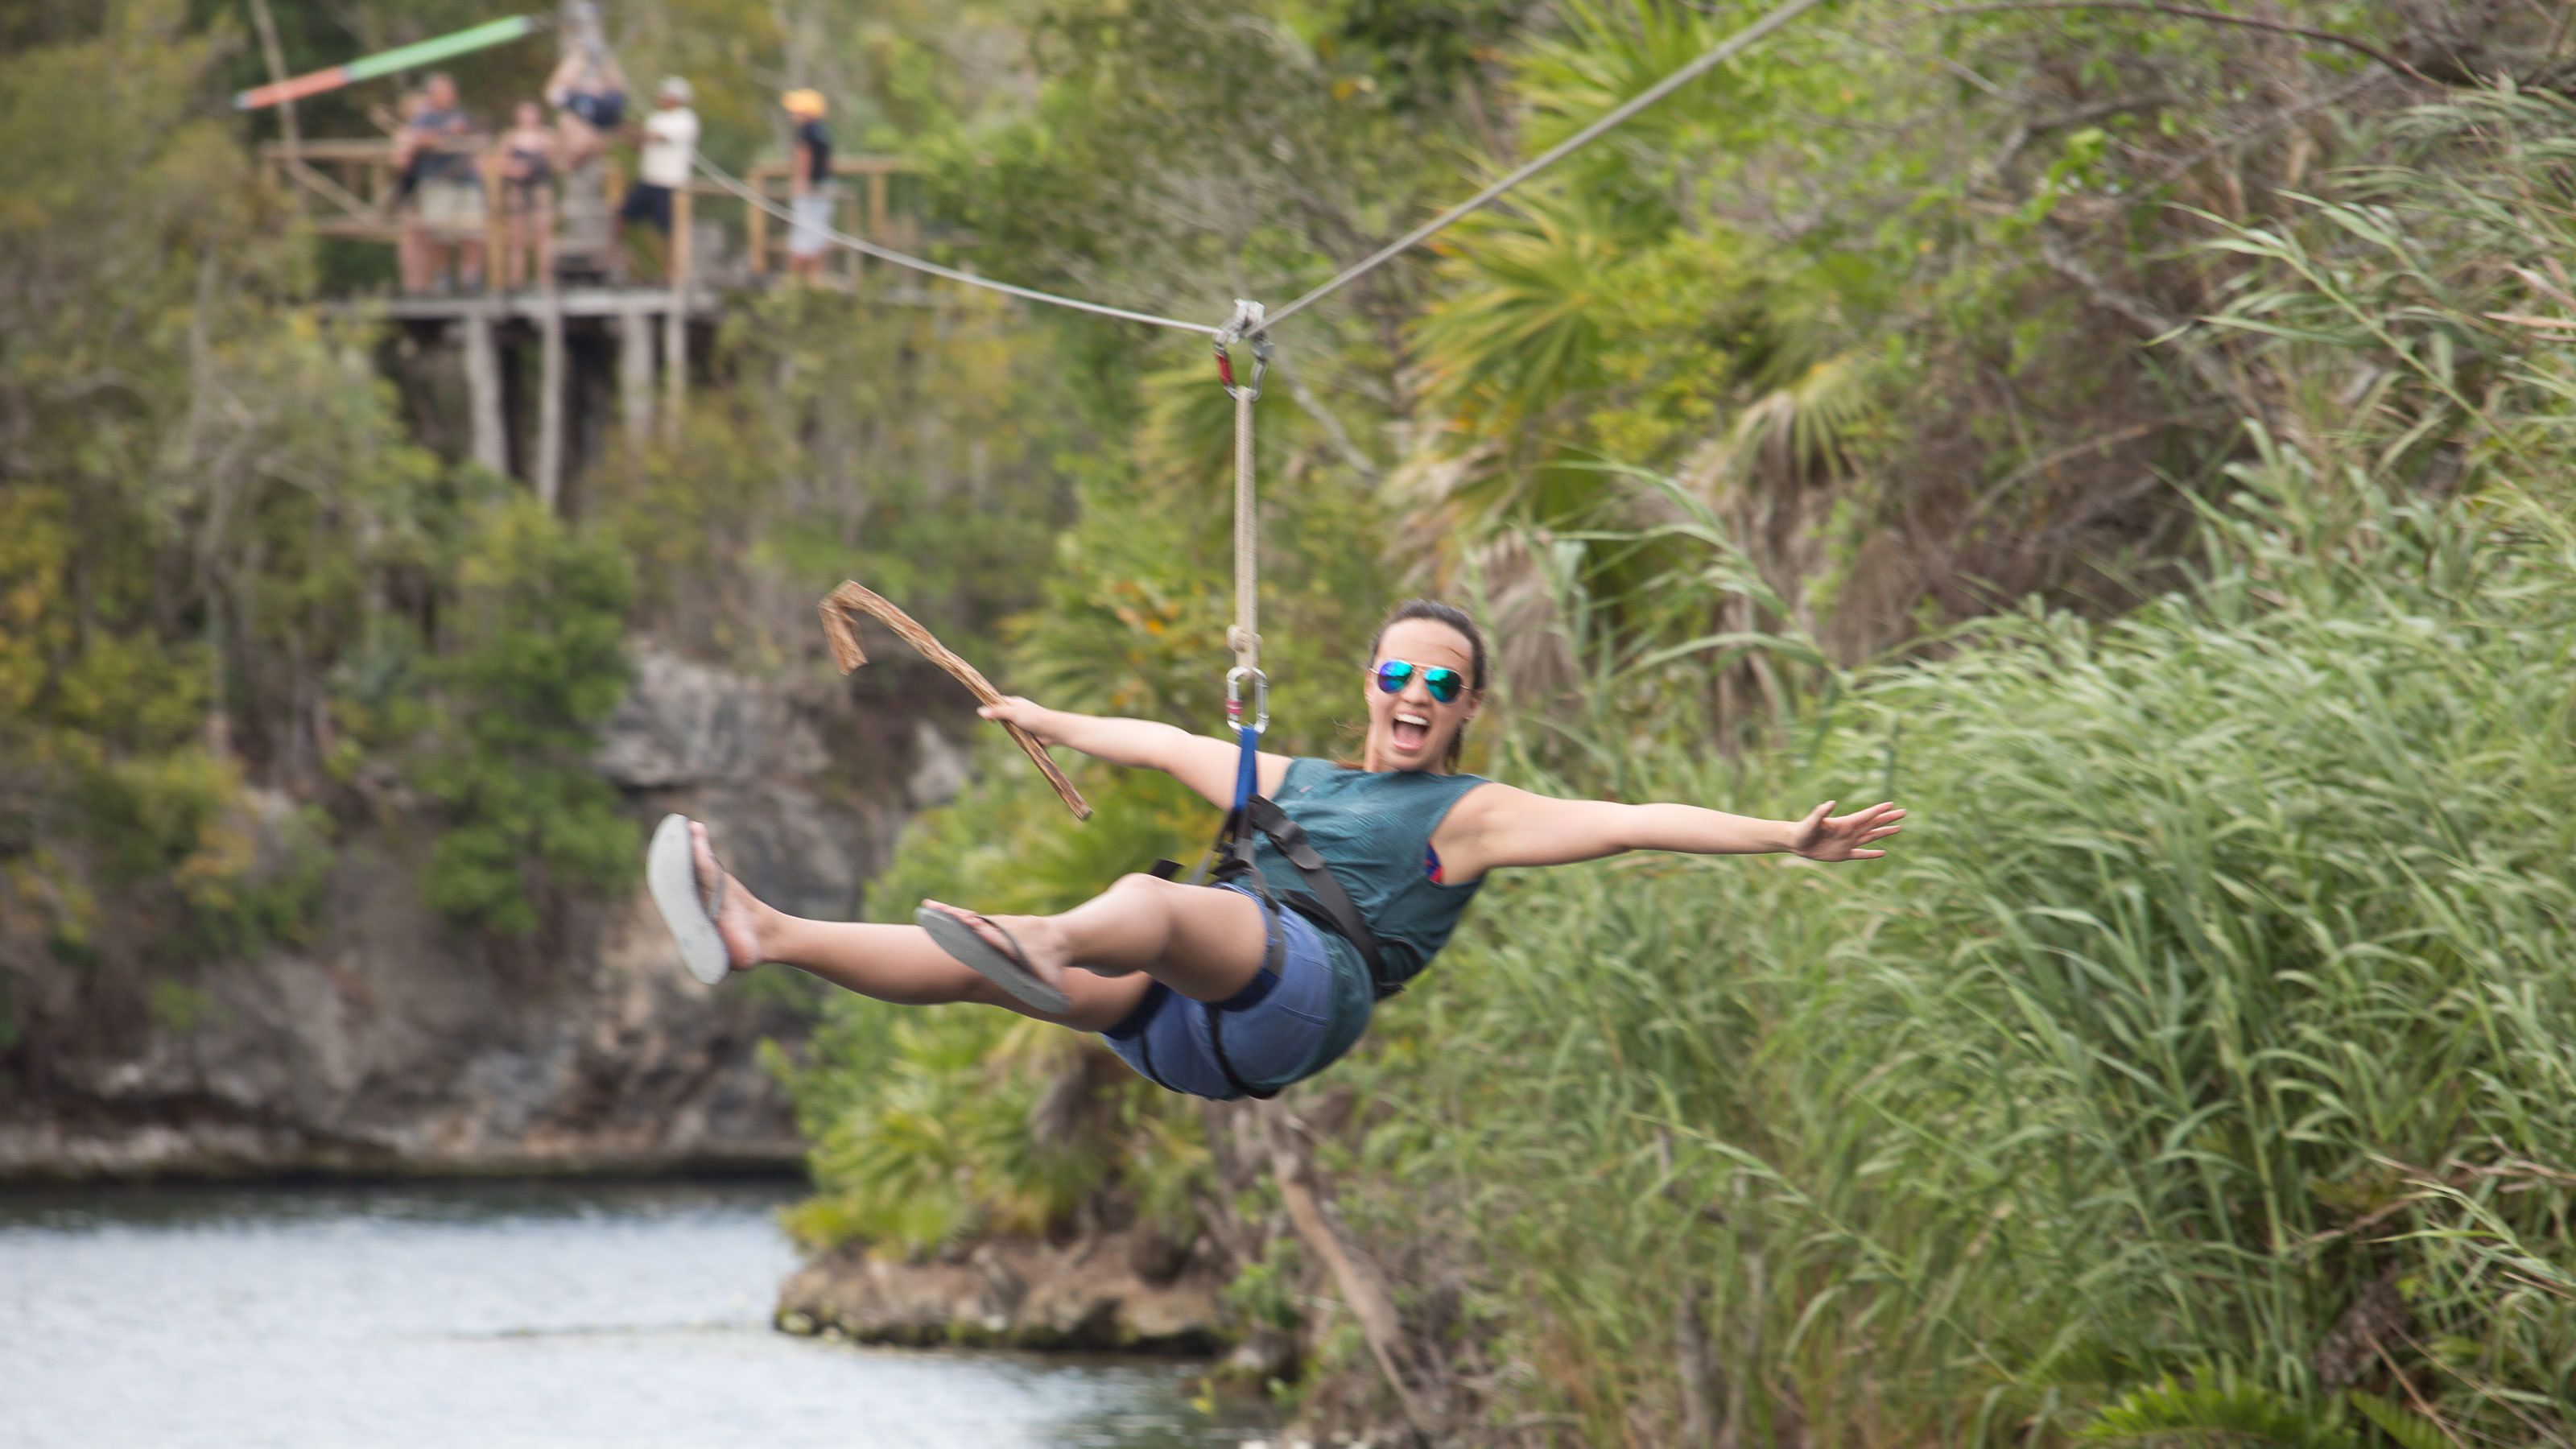 Zipline in the Tankah Eco Adventure Park as you wrap up the journey